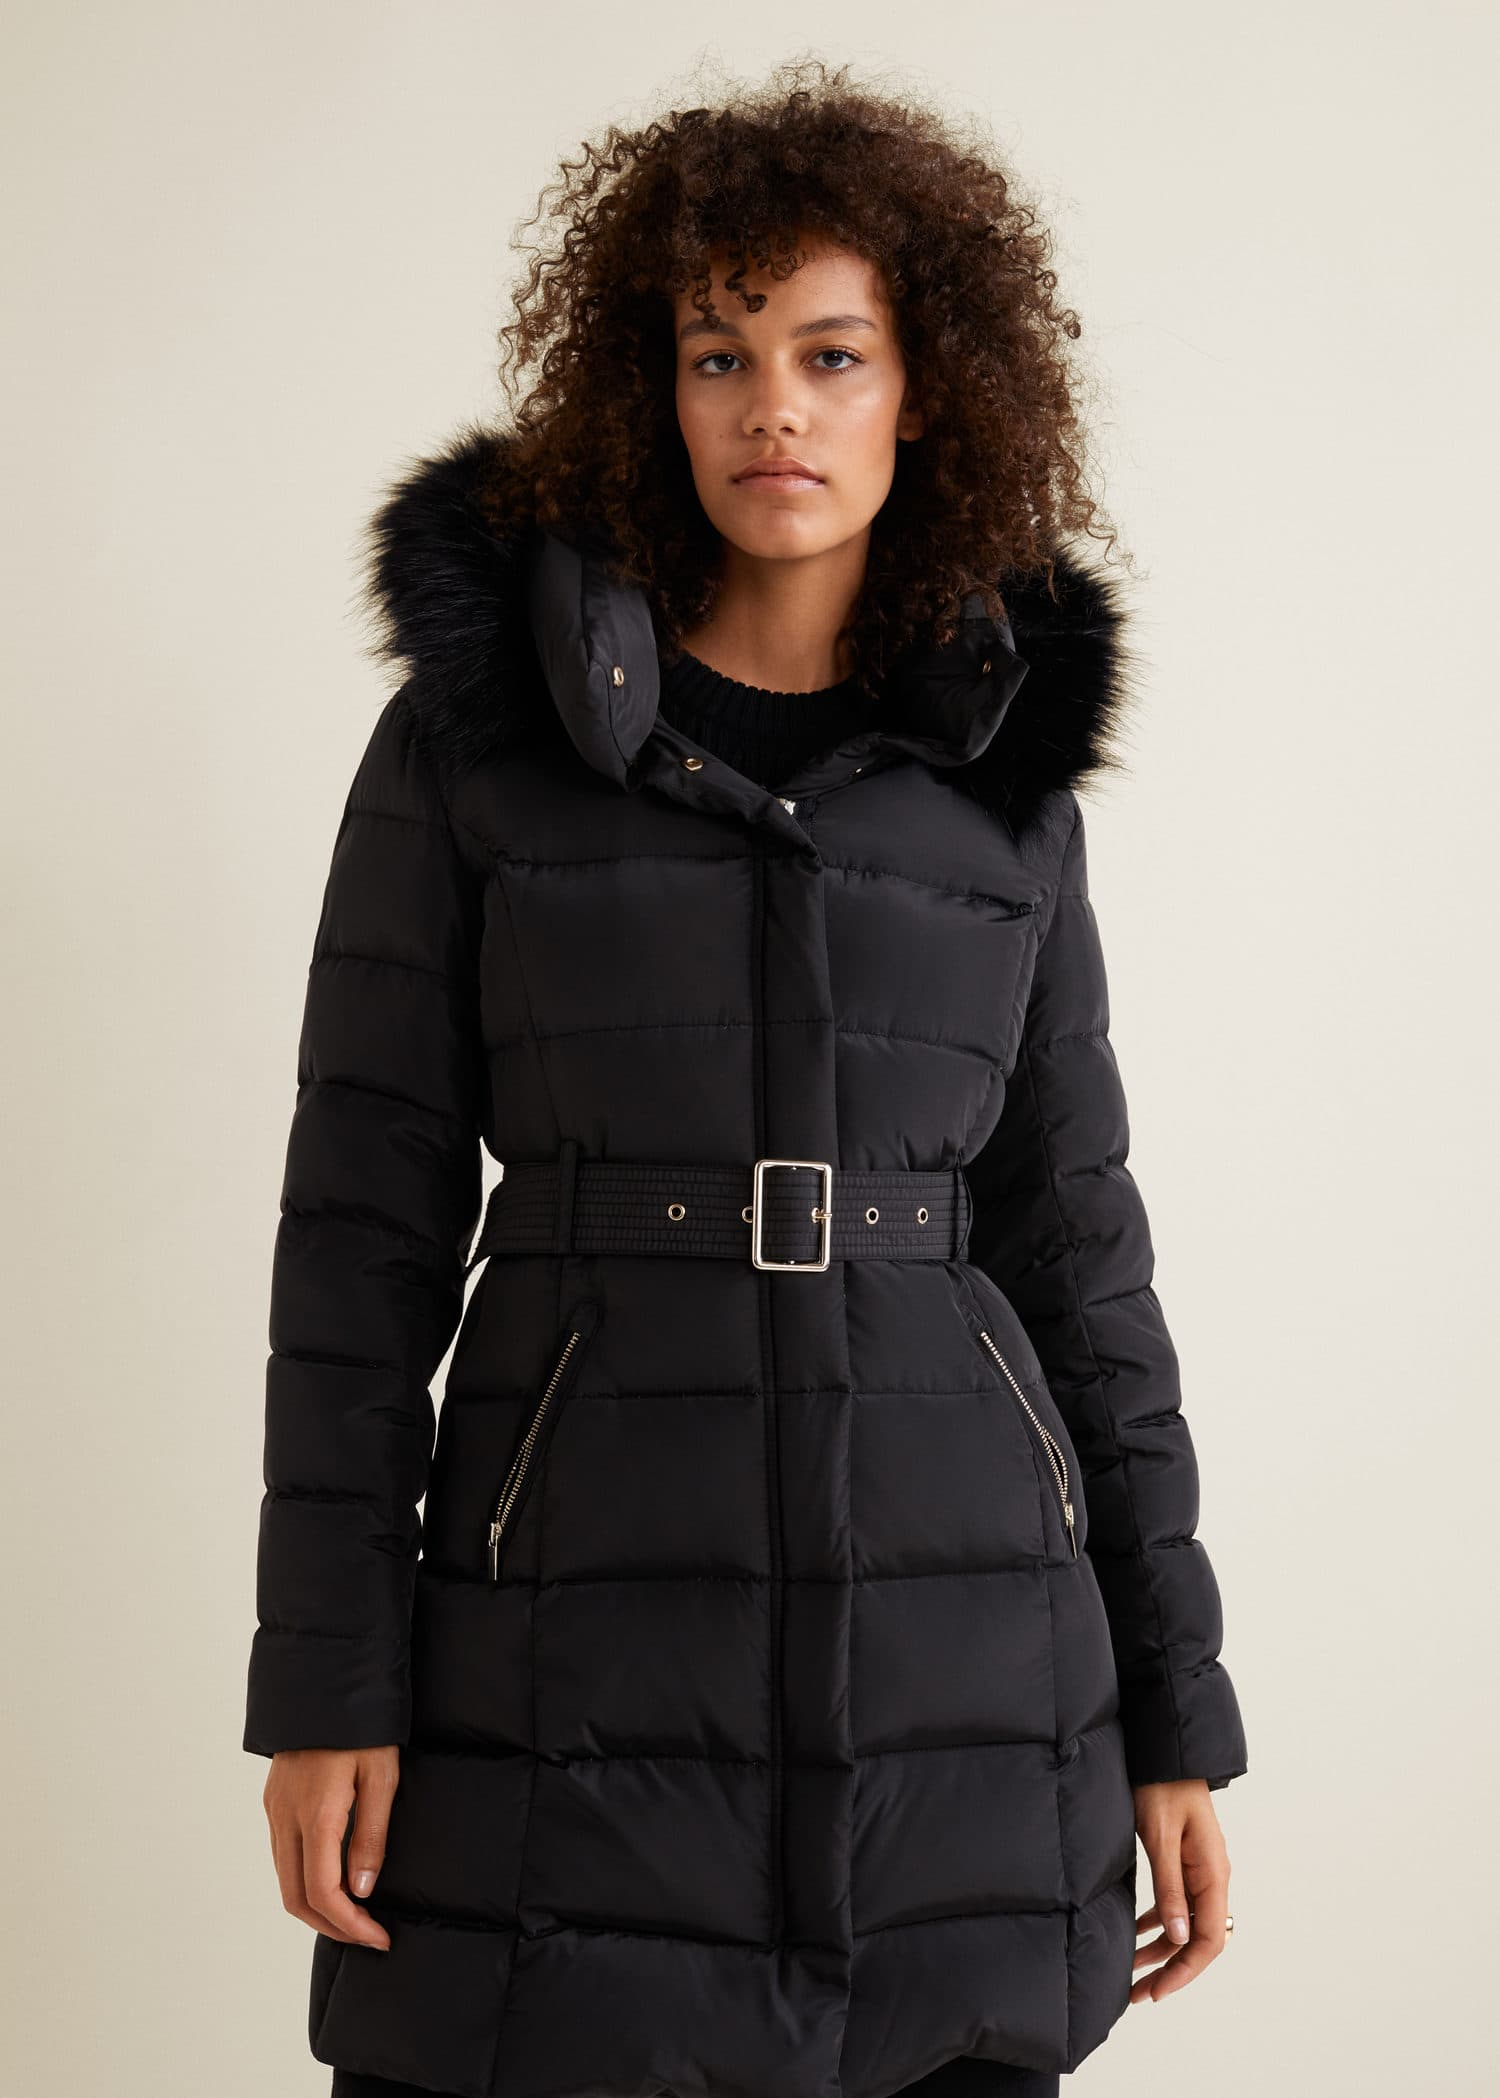 Manteau long pull and bear